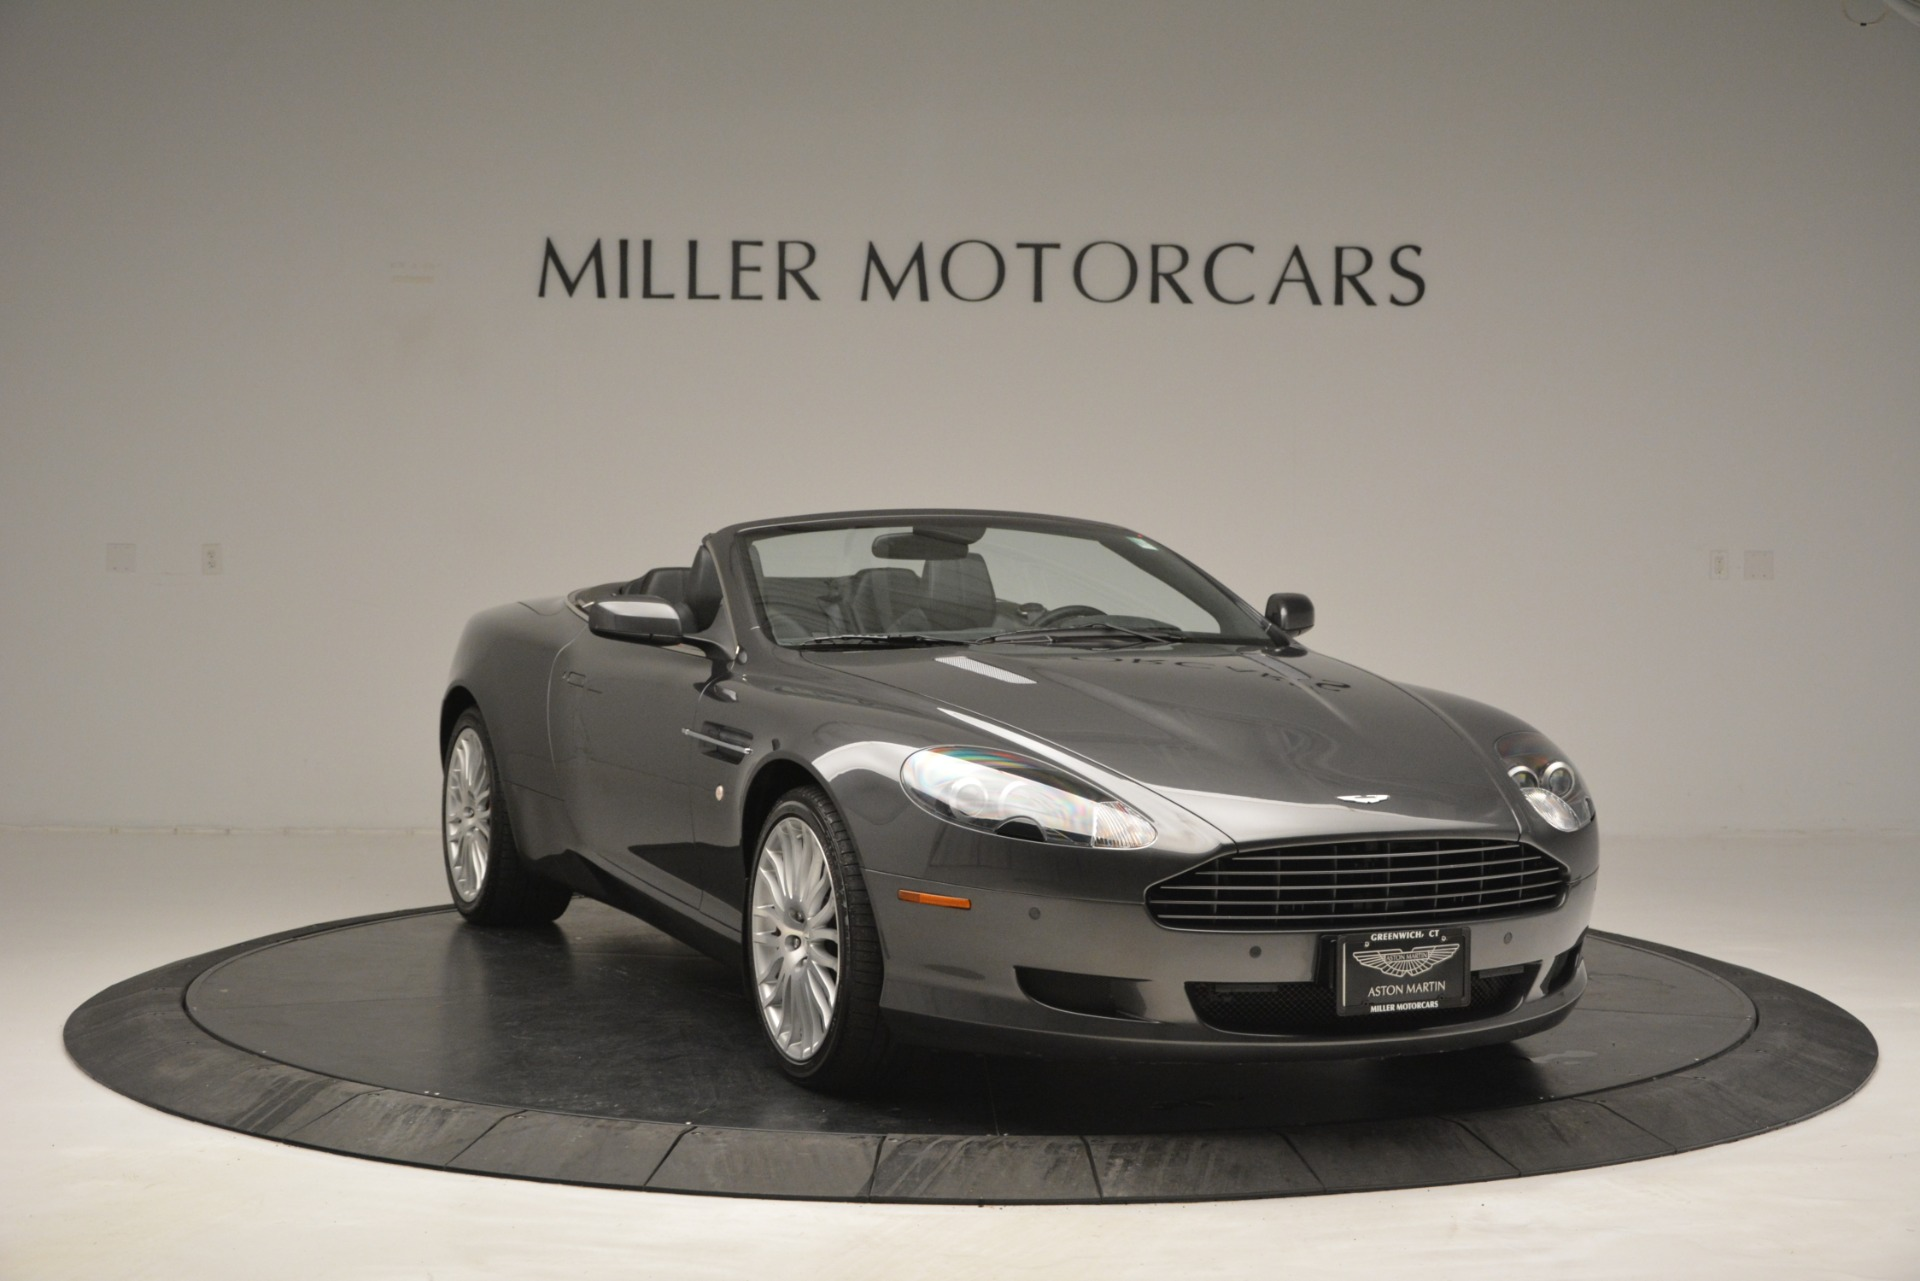 Used 2009 Aston Martin DB9 Convertible For Sale In Greenwich, CT 2930_p11